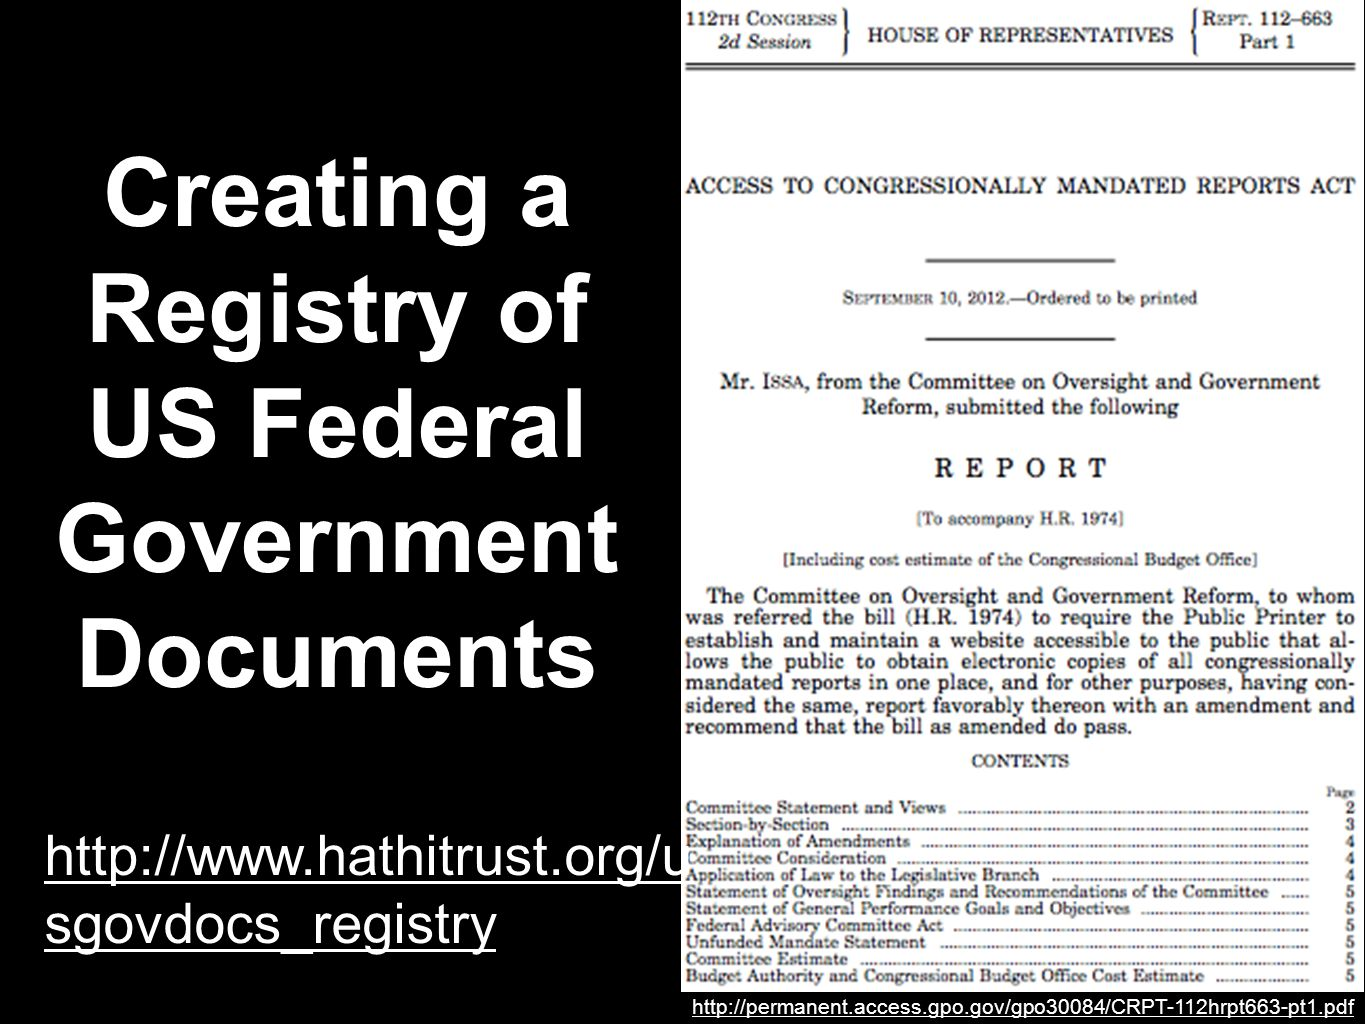 Creating a Registry of US Federal Government Documents